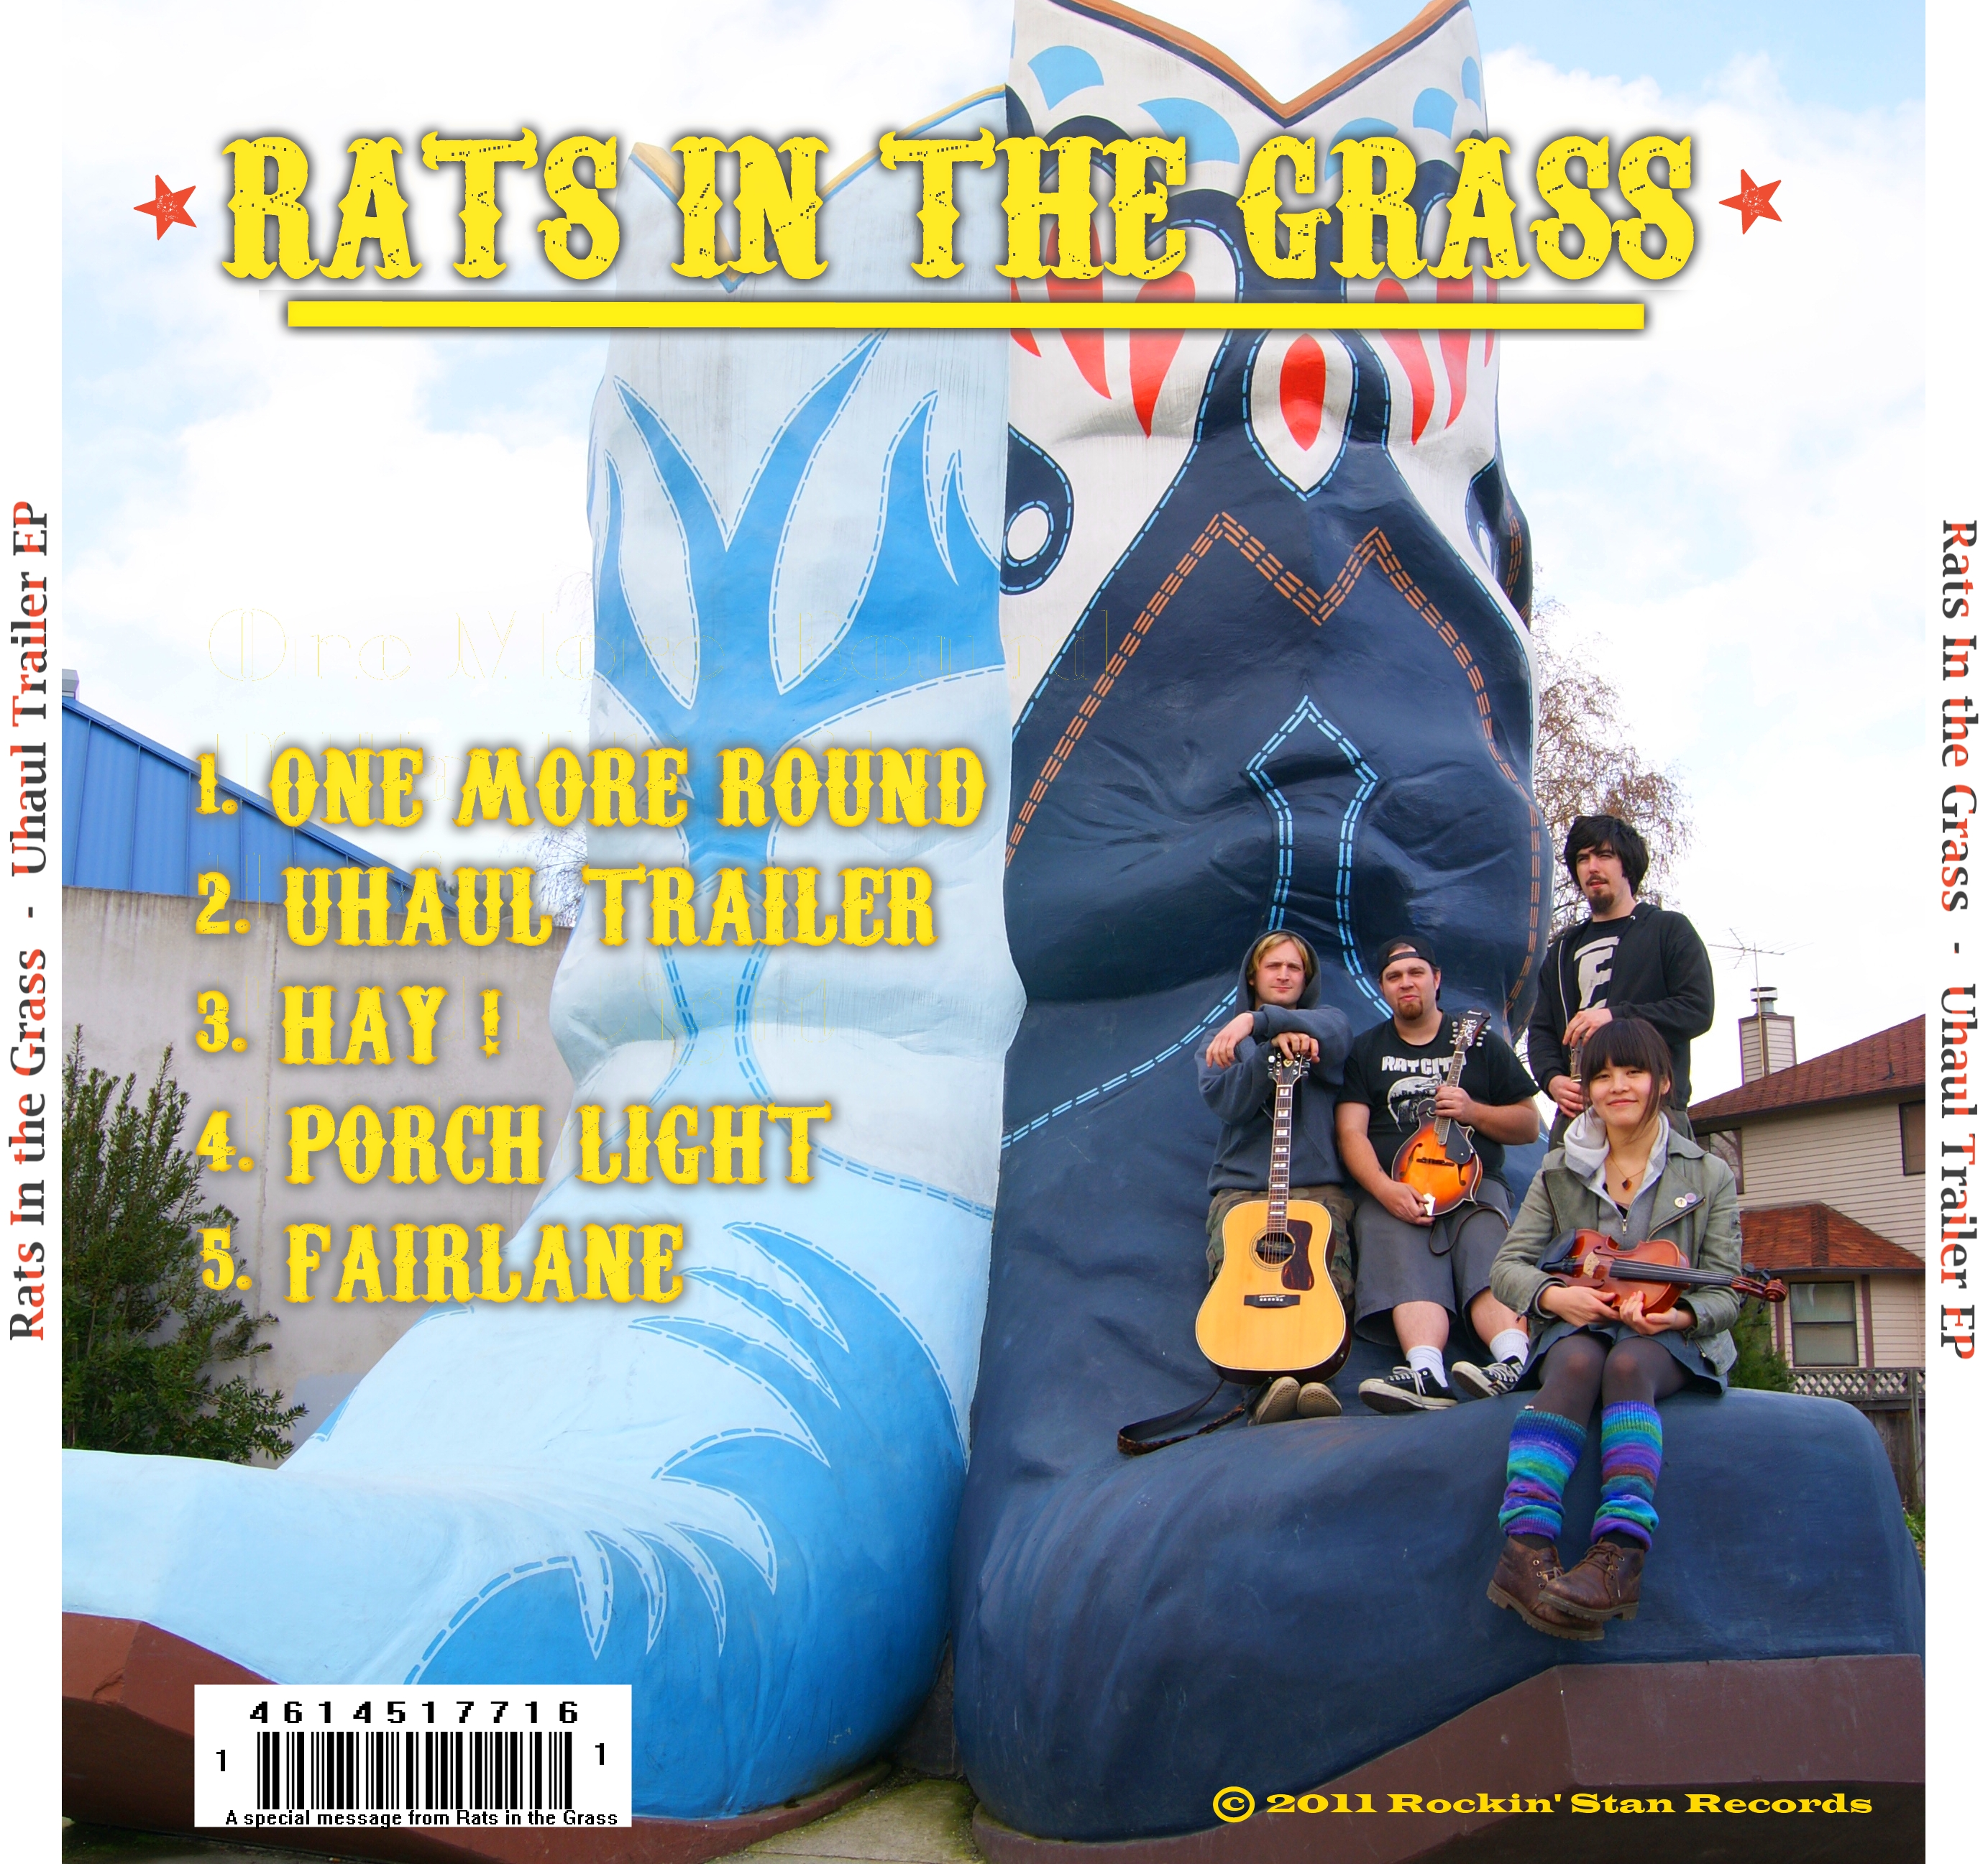 Rats In The Grass - Uhaul Trailer EP